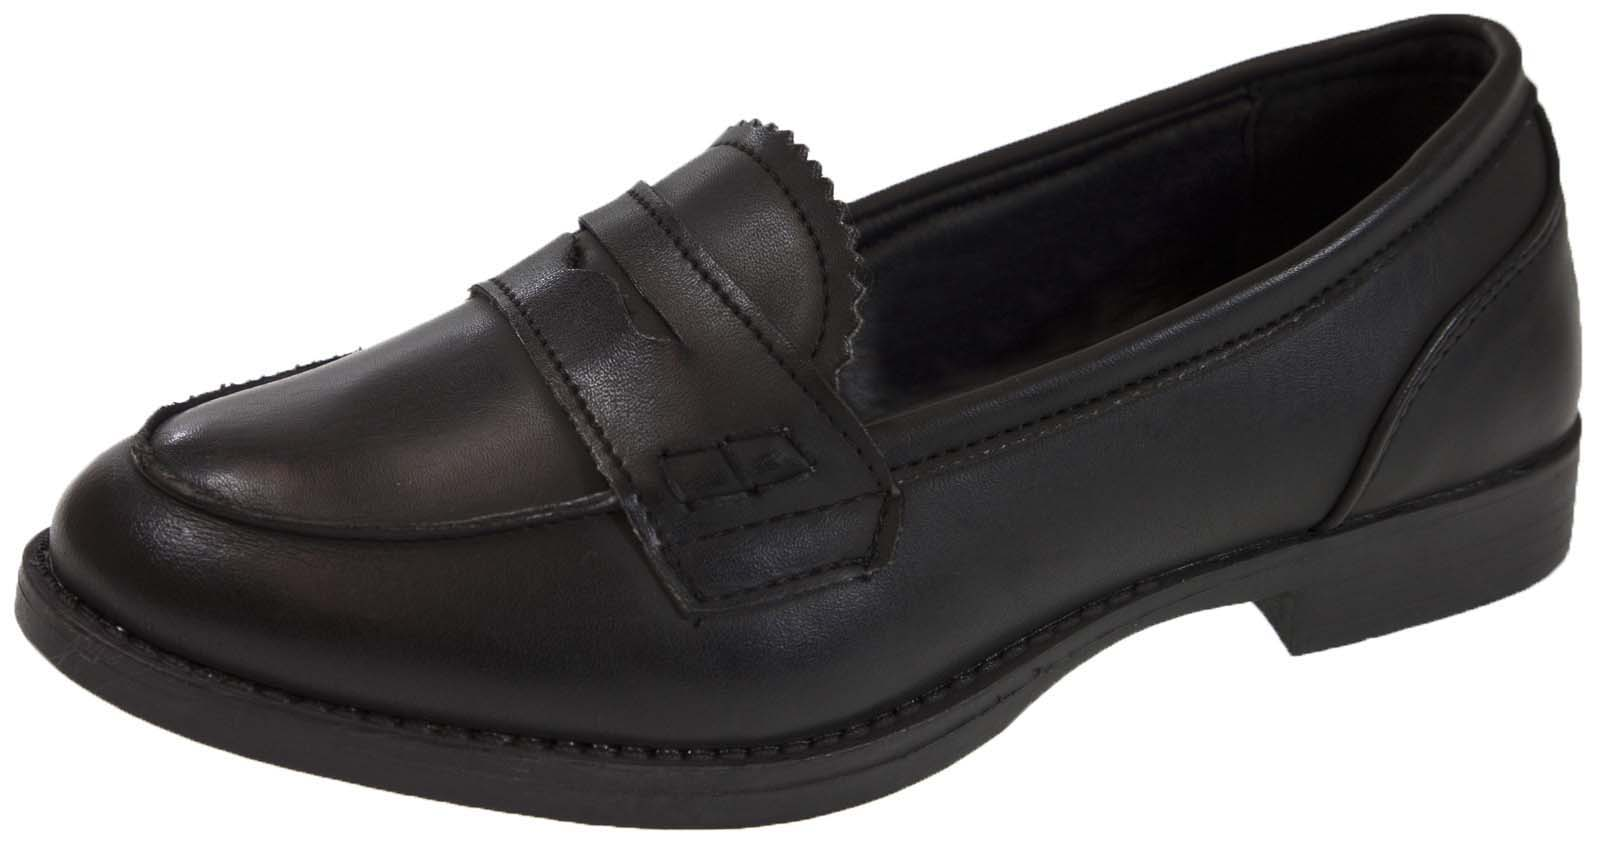 Girls Slip On Loafers Faux Leather School Shoes Womens Comfort Work Shoes Size